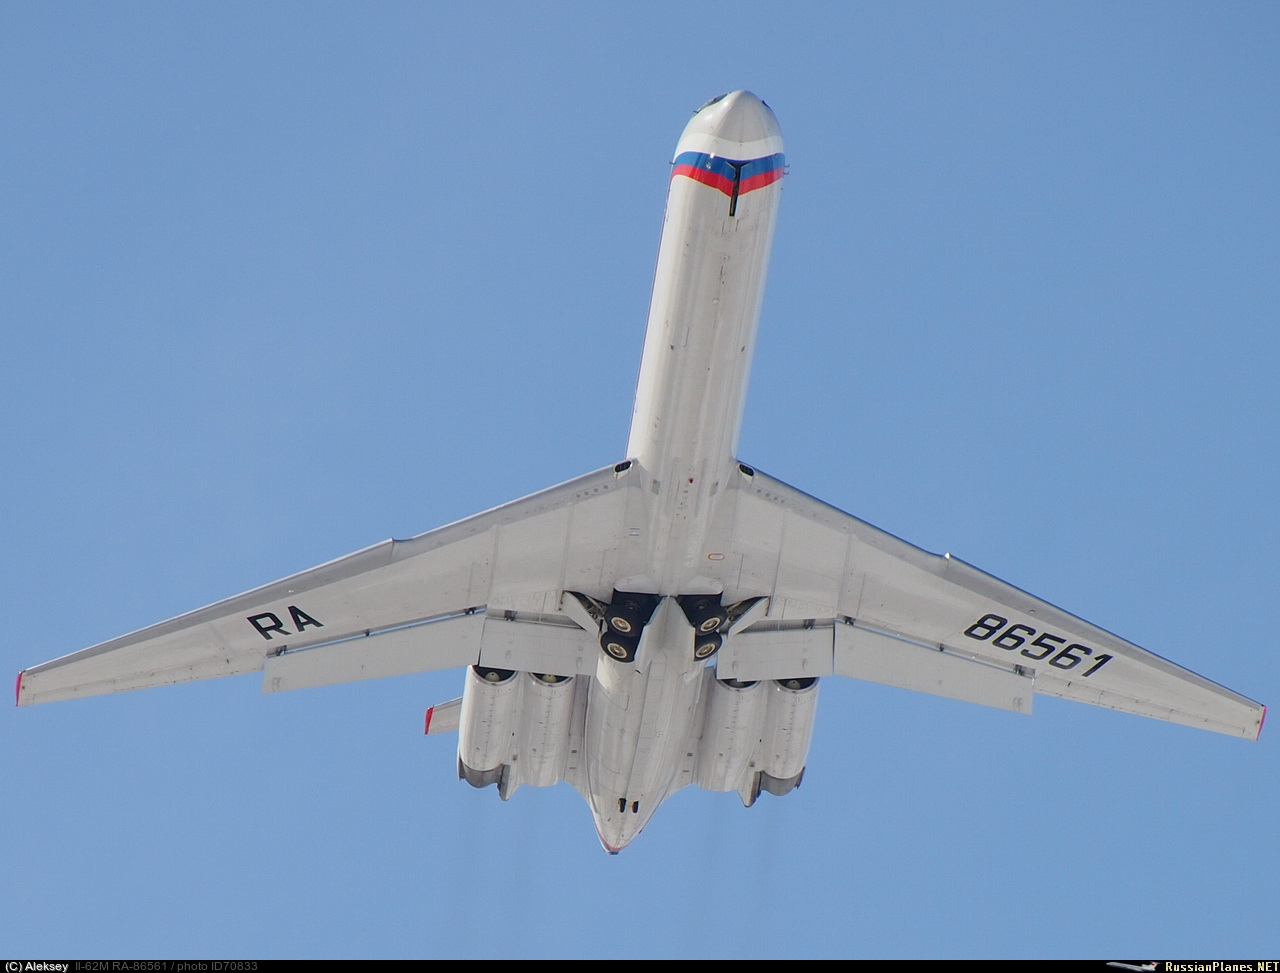 http://russianplanes.net/images/to71000/070833.jpg